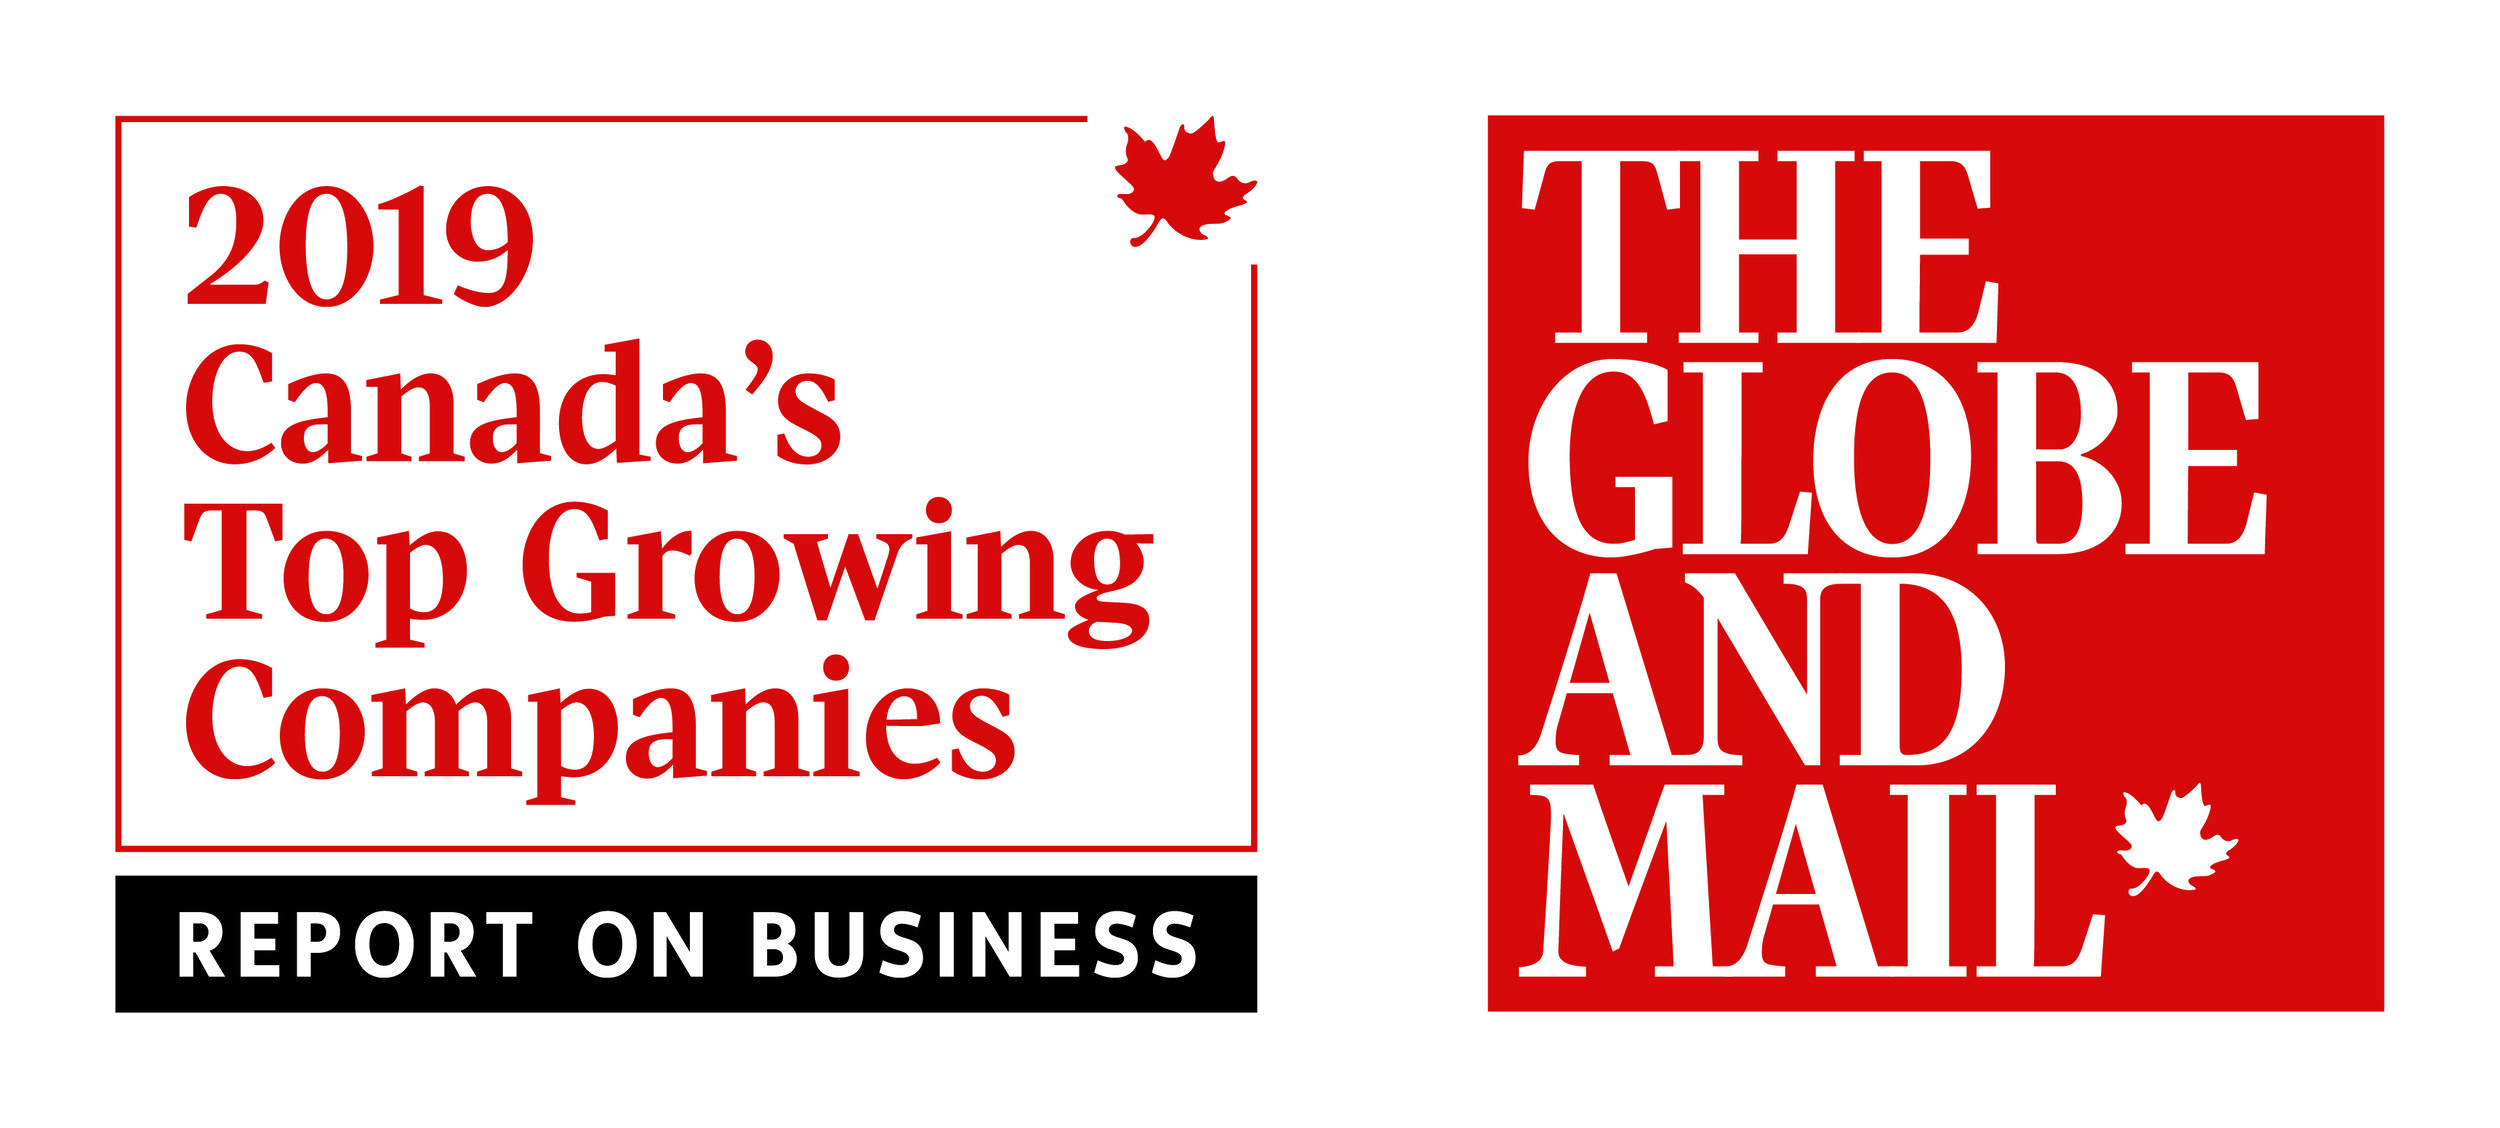 2019 CTGC with The Globe and Mail CMYK.jpg